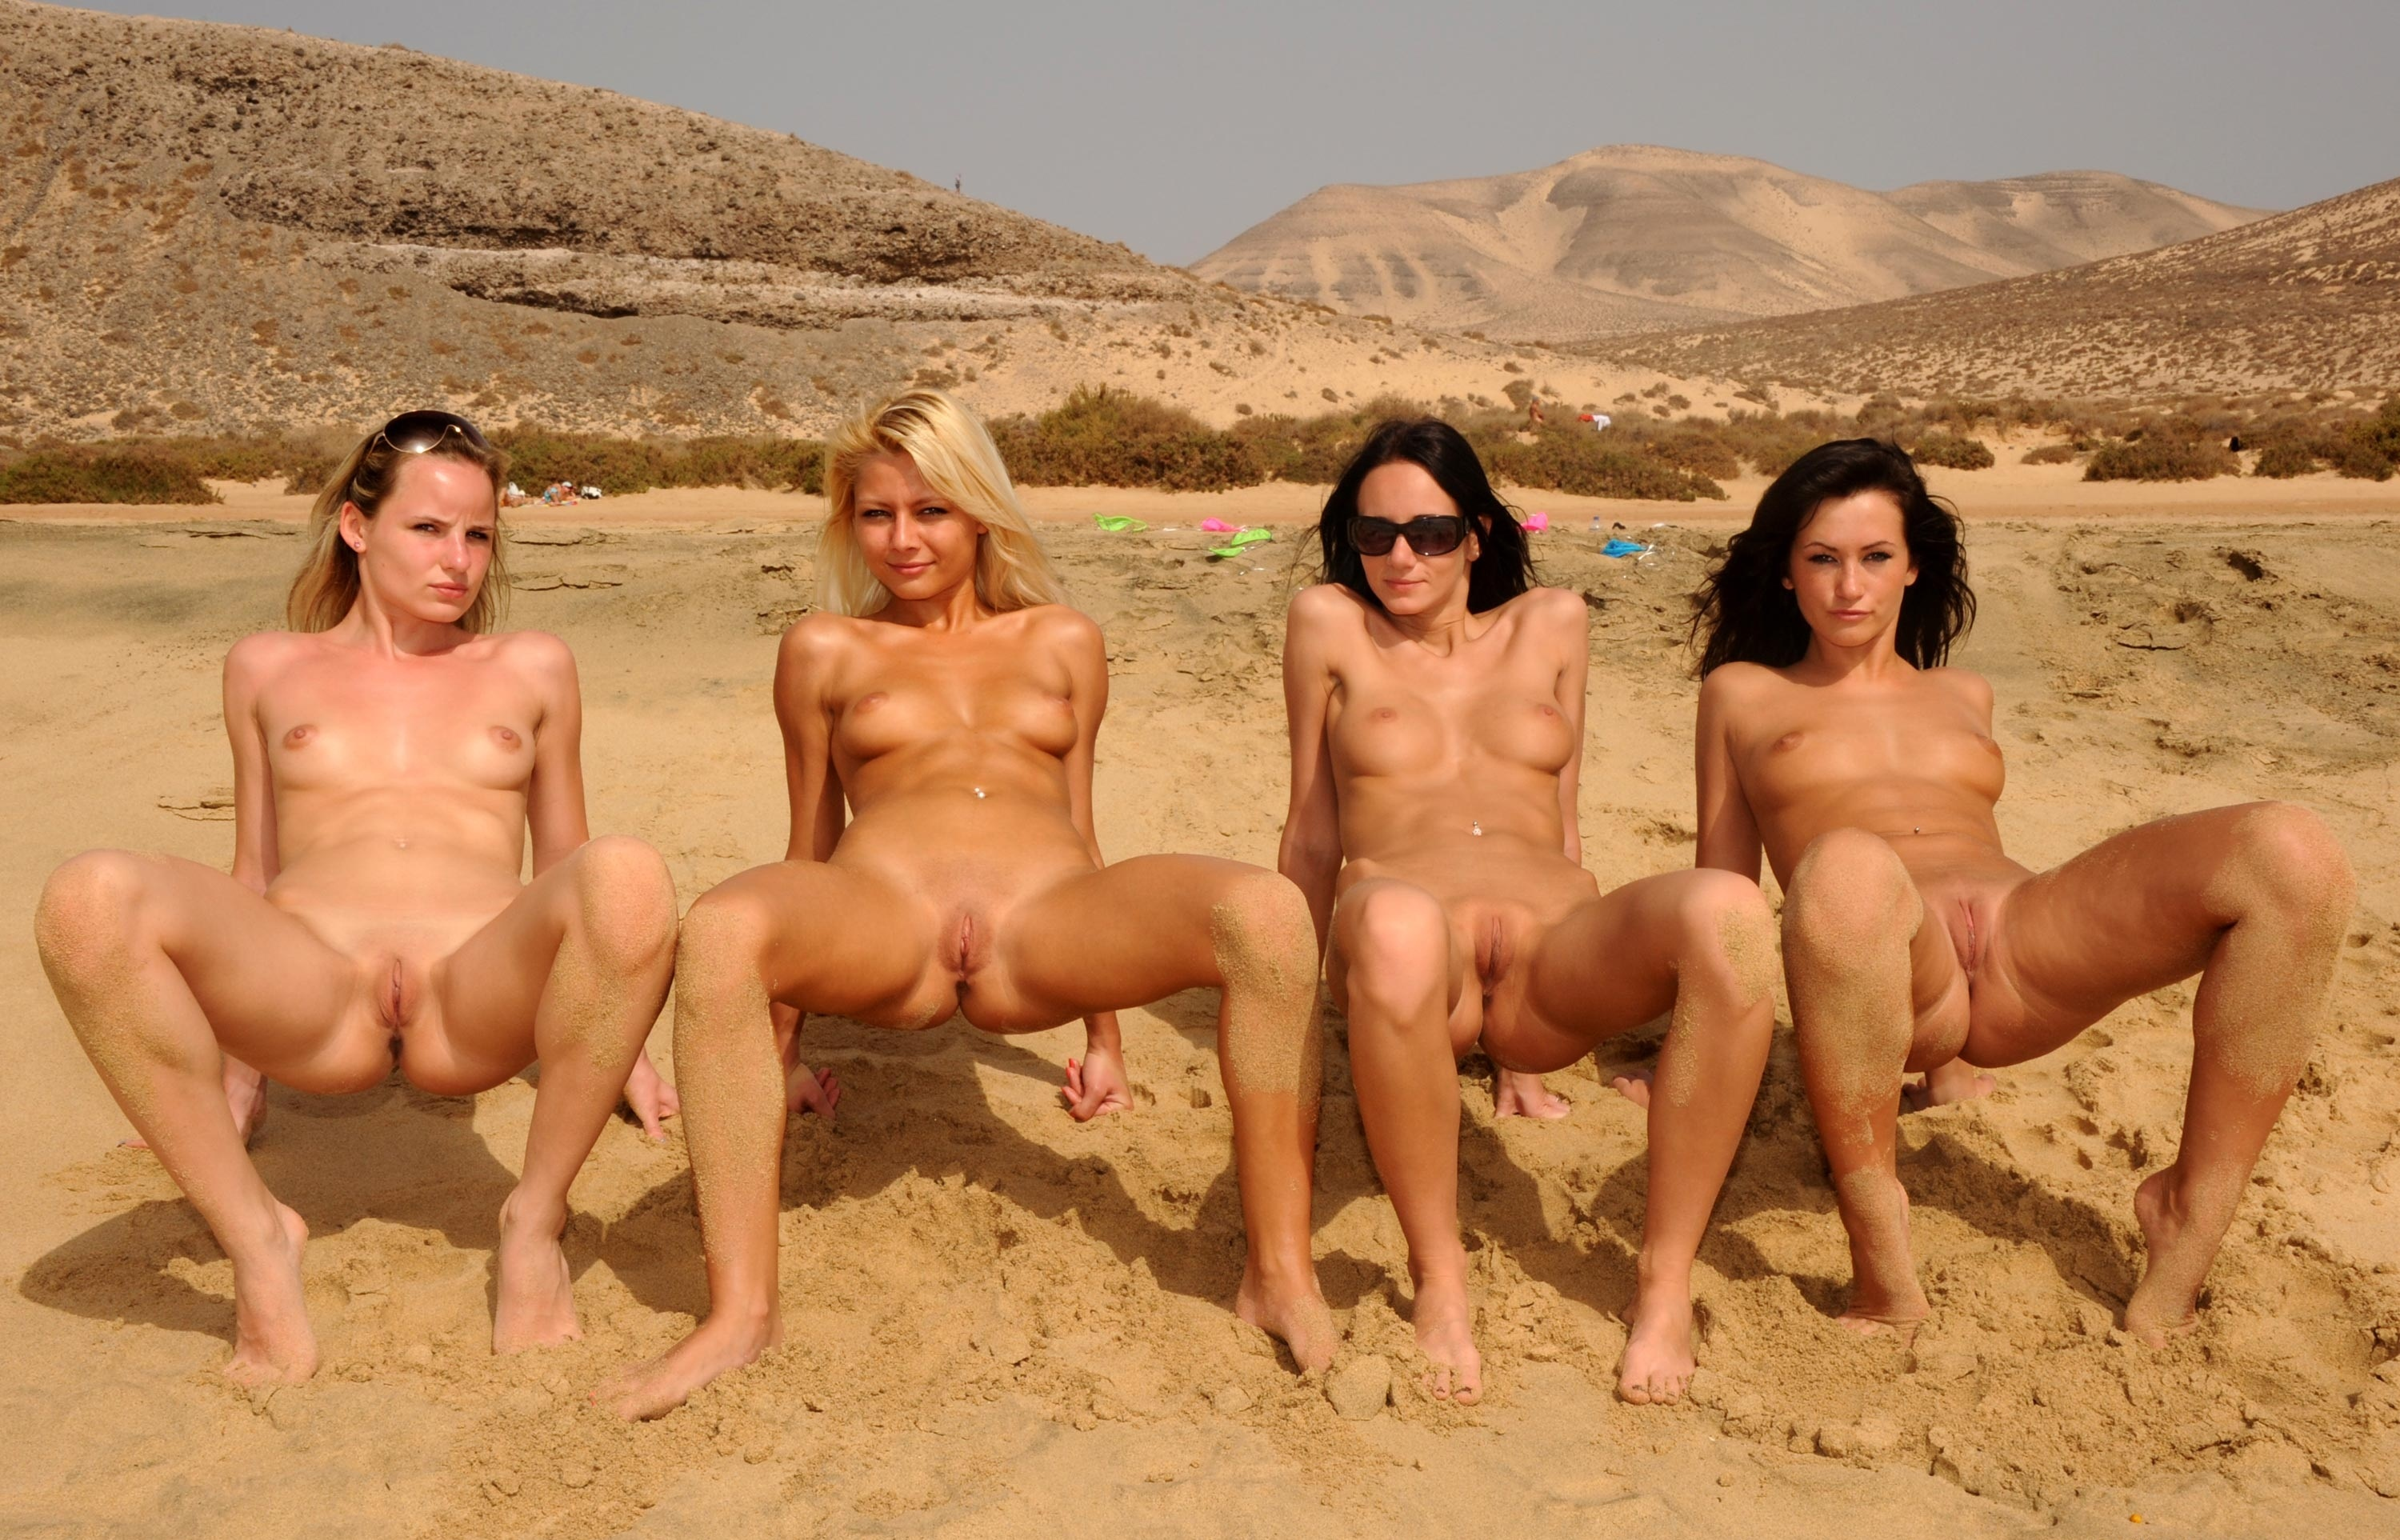 group nude pussy Free nudist naked beach babe pictures! babes showing they're ...